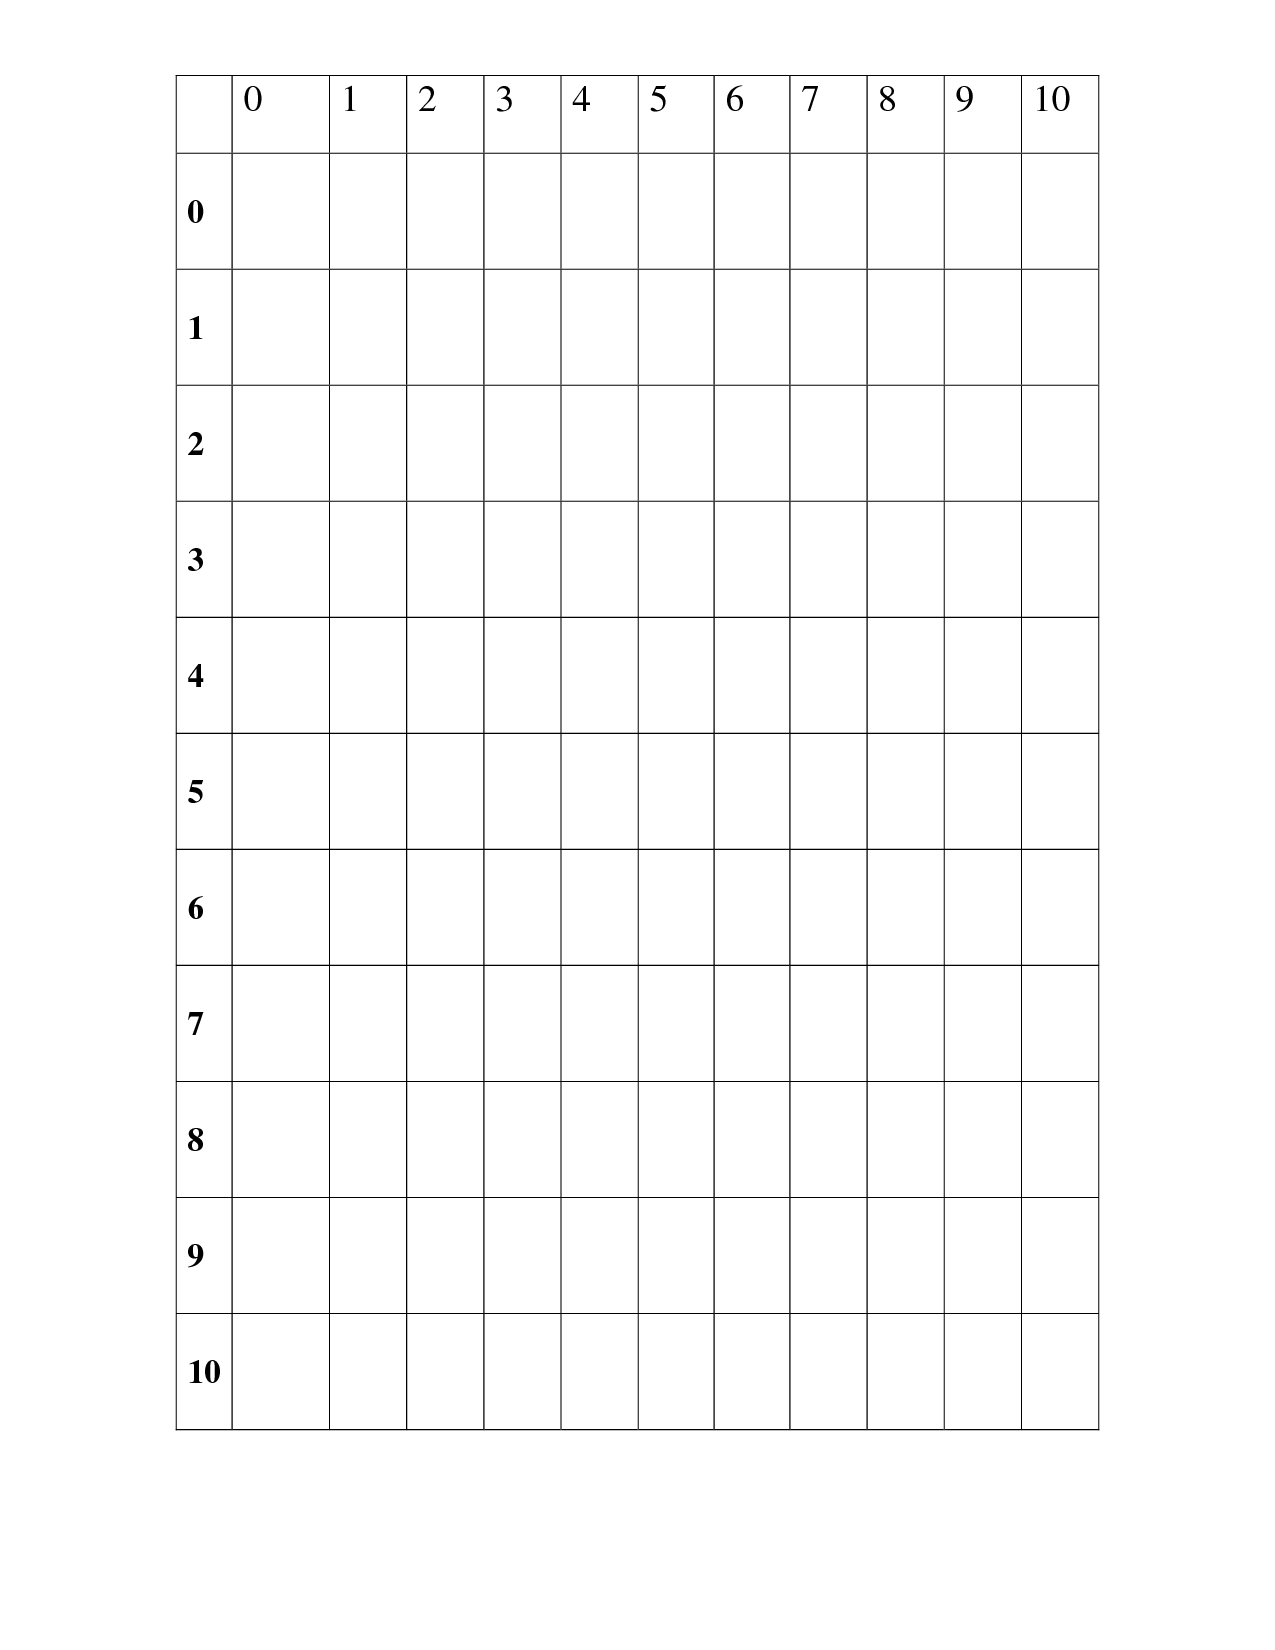 Free printable blank multiplication table 0 12 for 12 by 12 multiplication table blank